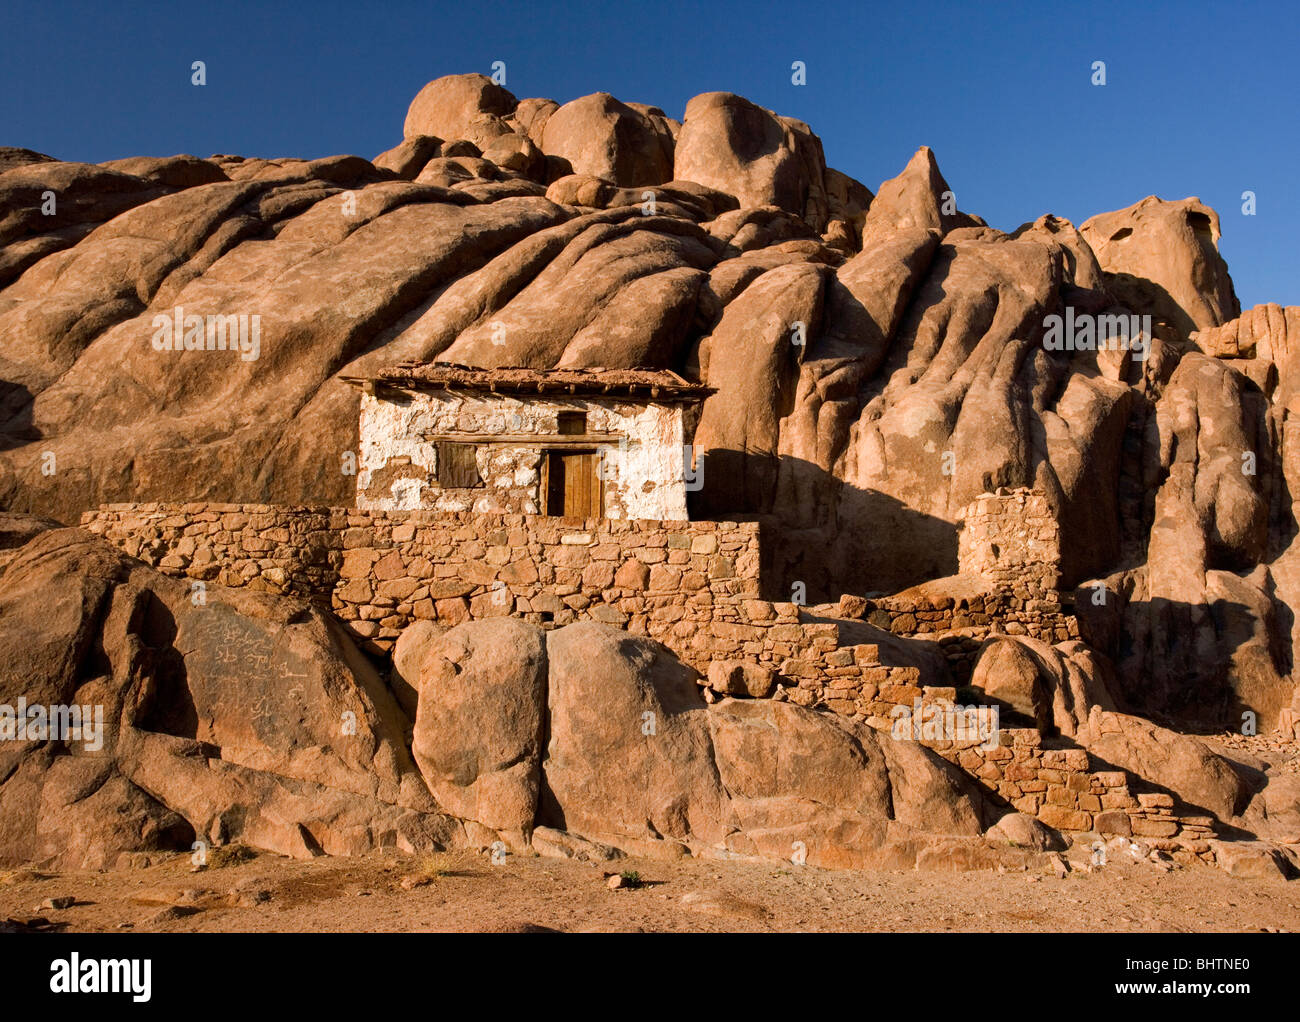 Chapel near the summit of Mount Sinai at sunrise, Saint Katherine, Egypt. - Stock Image